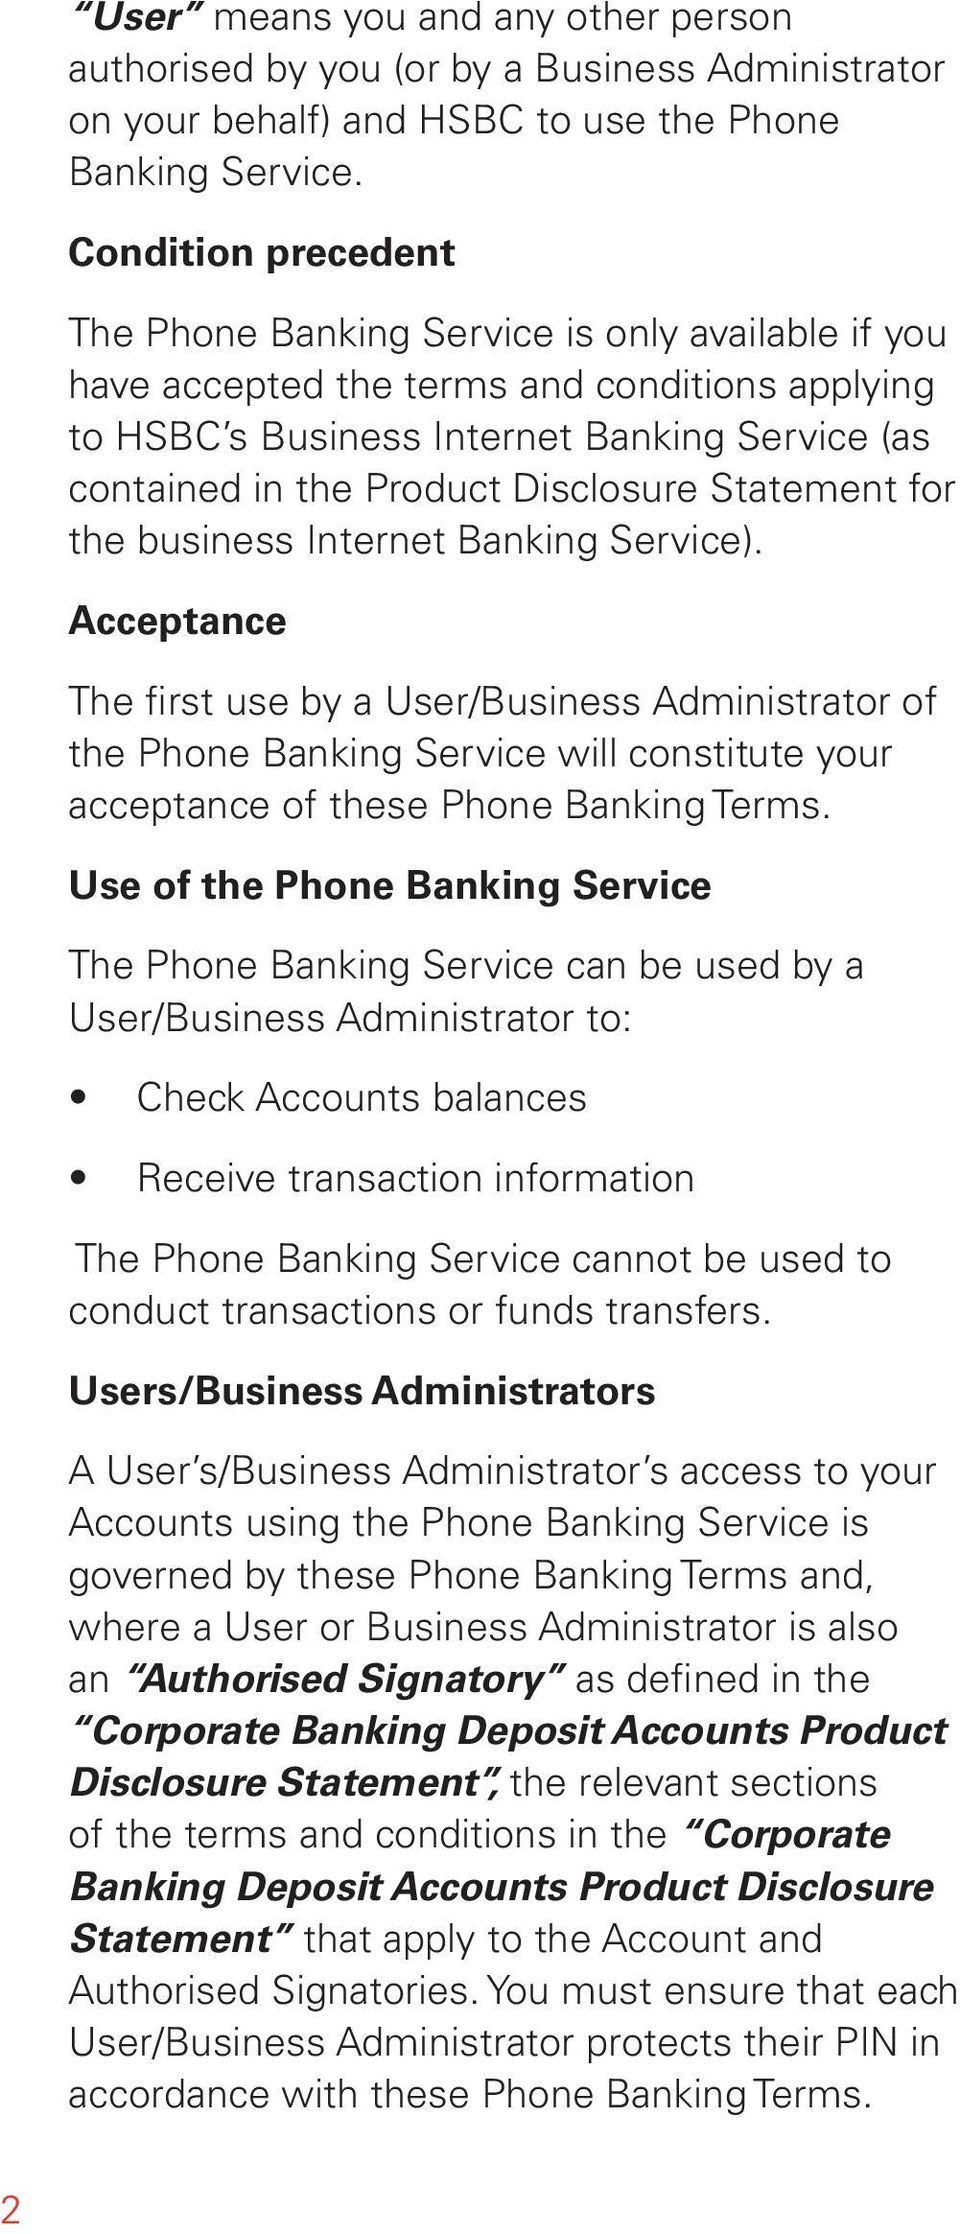 Statement for the bsiness Internet Banking Service). Acceptance The first se by a User/Bsiness Administrator of the Phone Banking Service will constitte yor acceptance of these Phone Banking Terms.